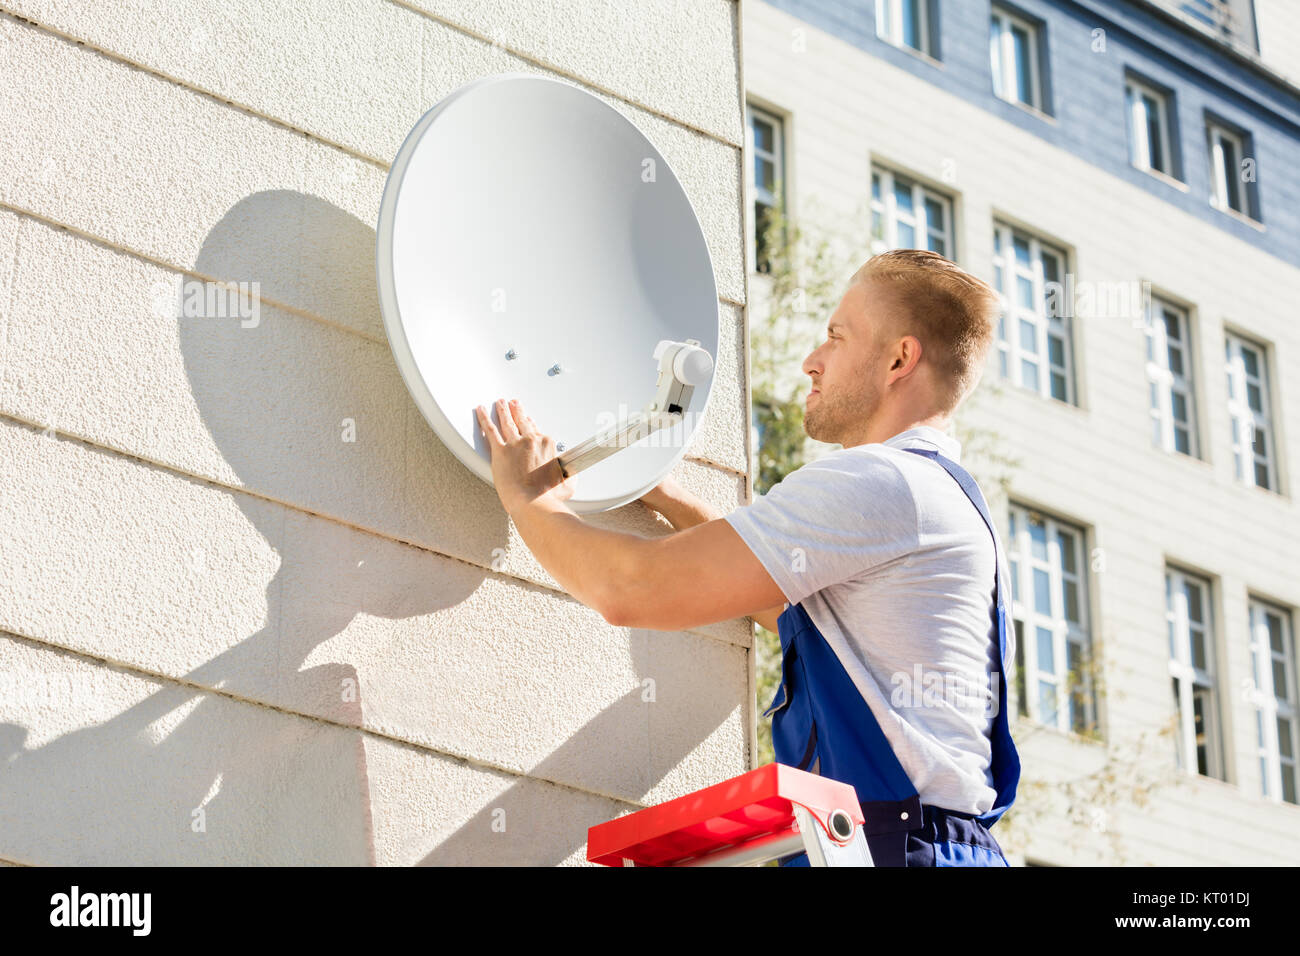 Man Fitting TV Satellite Dish - Stock Image